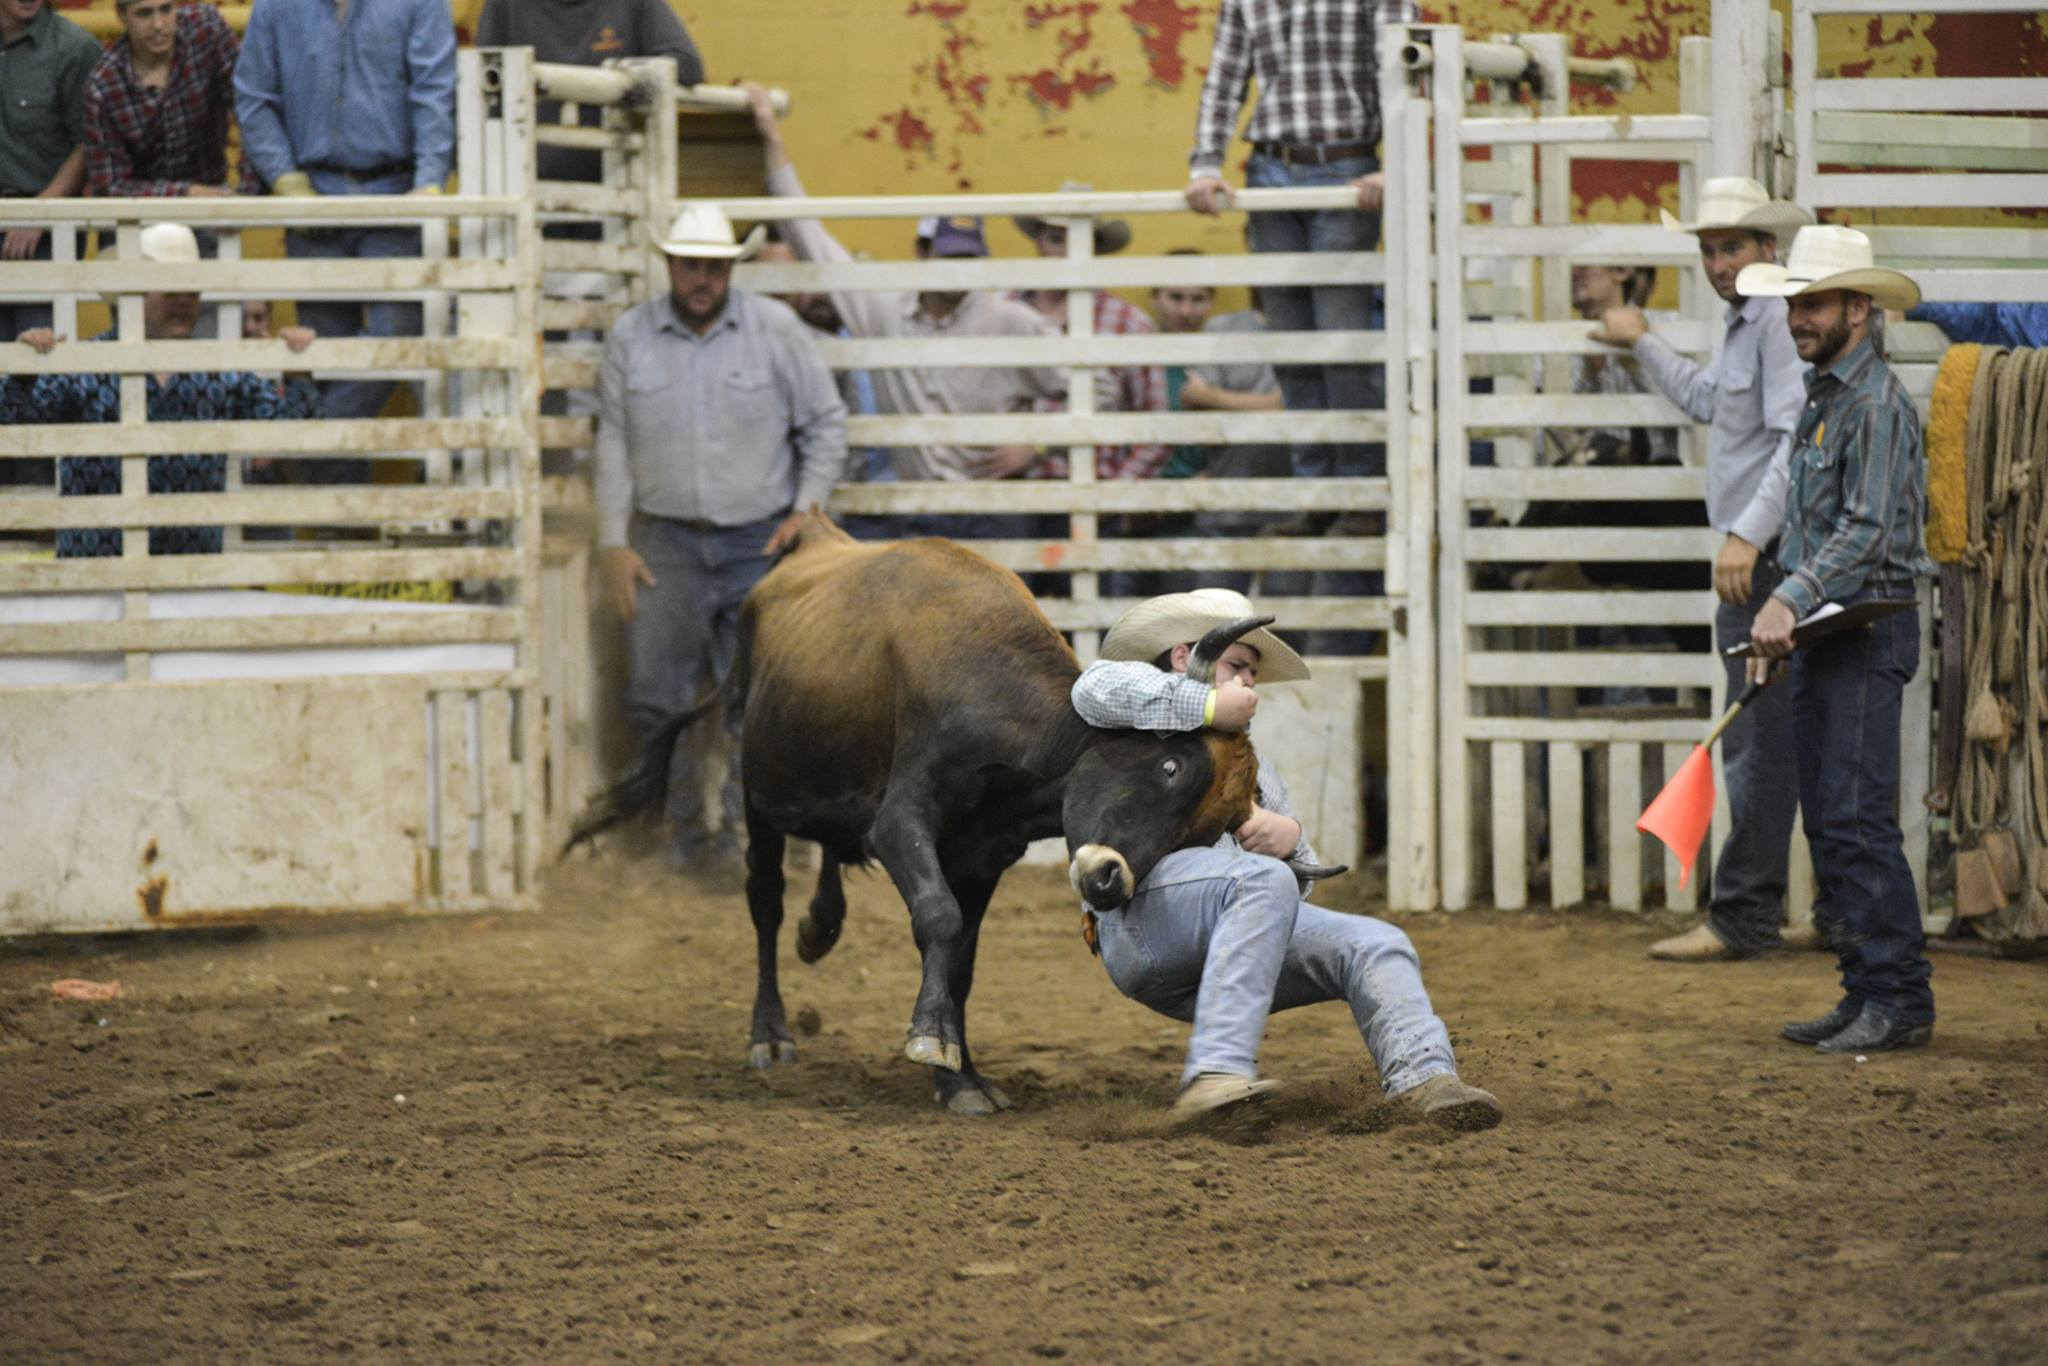 rodeo steer wresteling